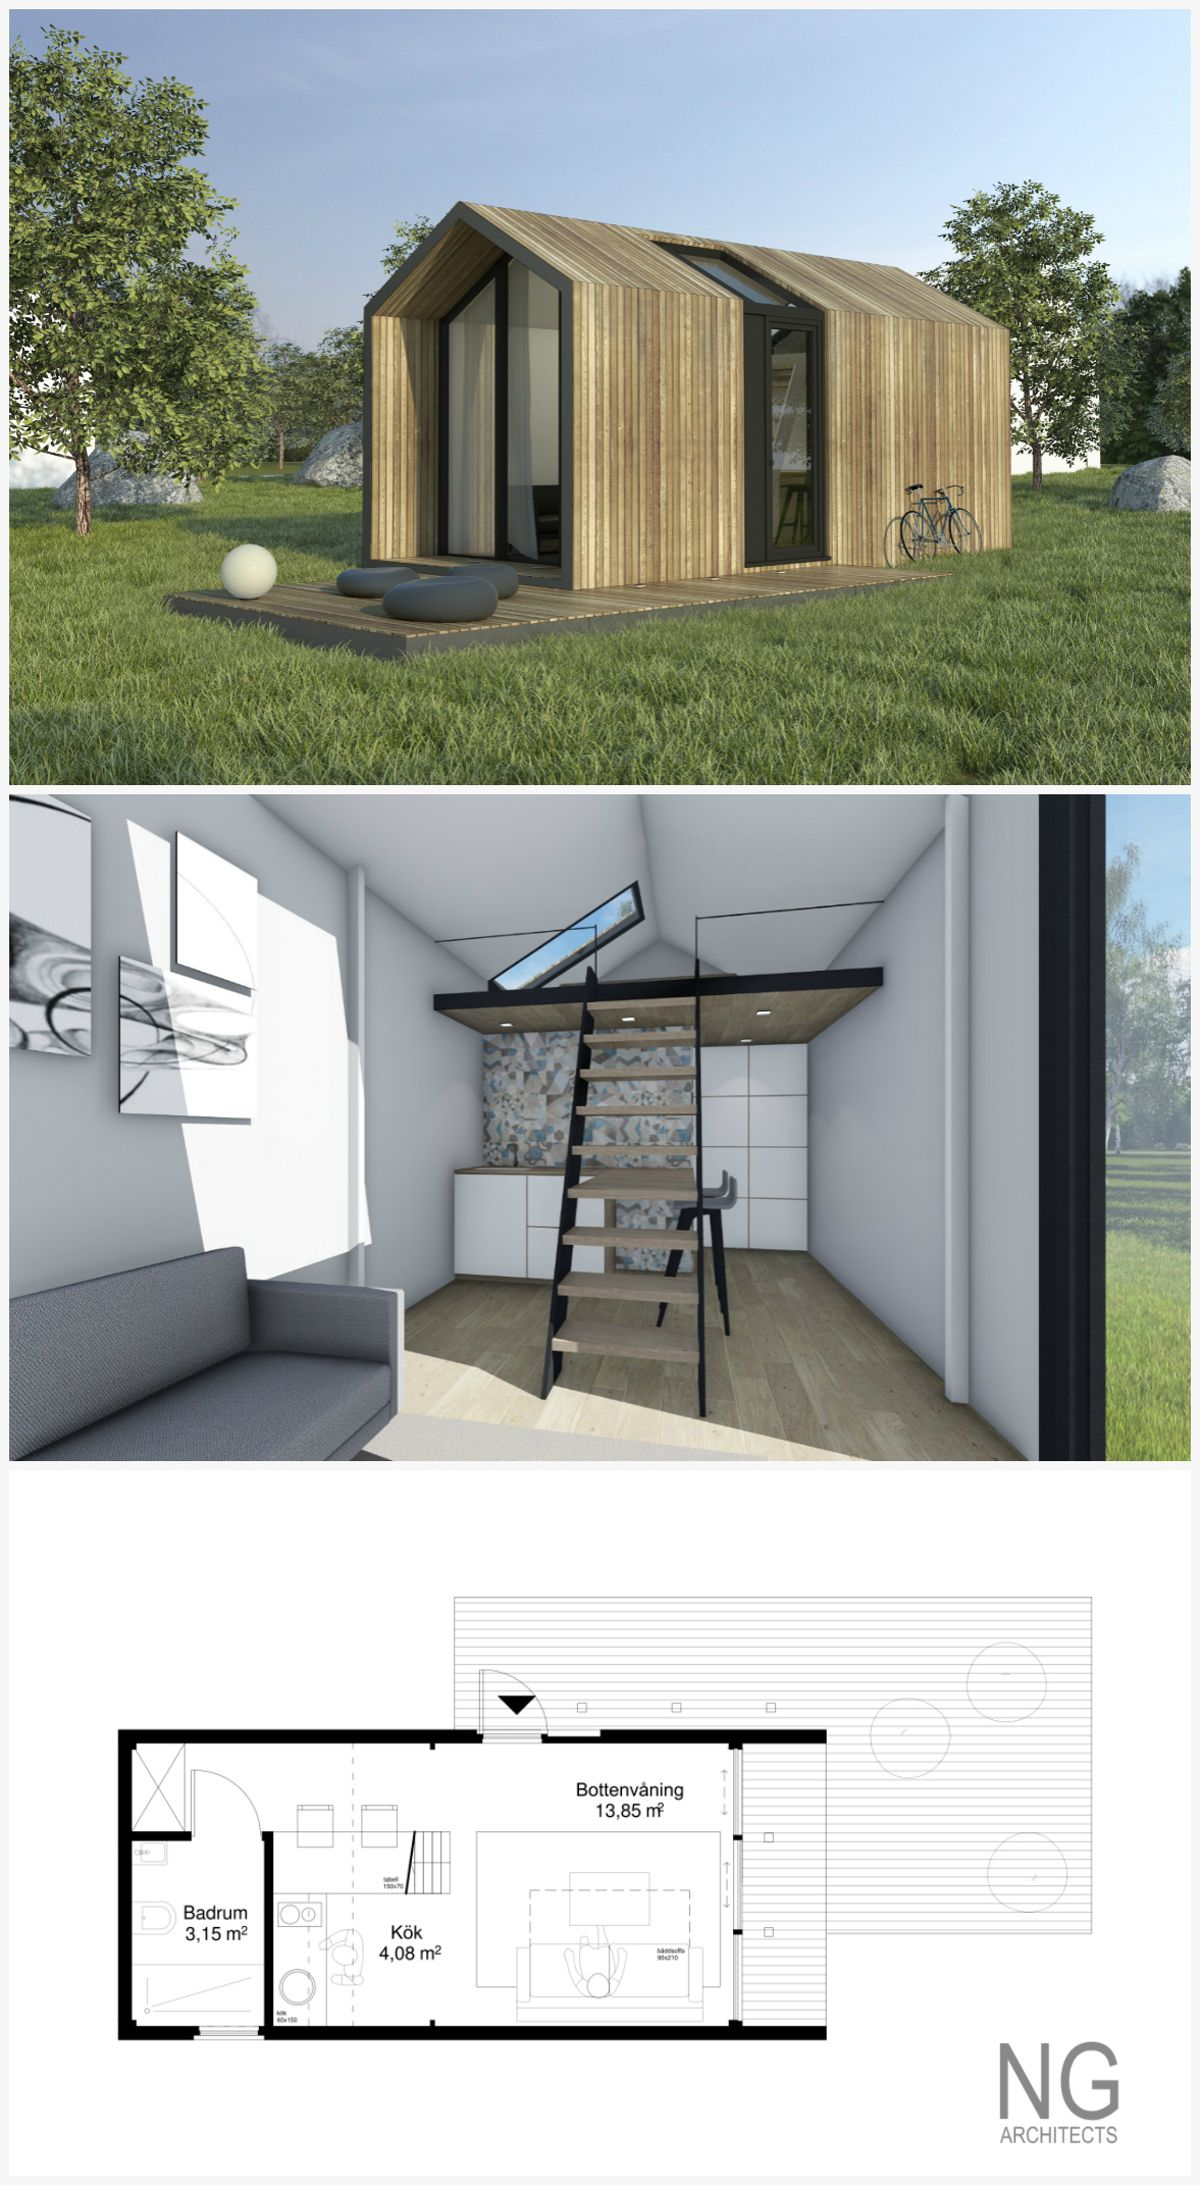 Corona - 25 m small house (attafallshus) designed by NG architects on compact home designs, compact modern house designs, small compact bedroom designs, small compact home, small compact bathroom, lightweight house designs, small home architecture, contemporary small home designs, small houseboat designs, small bungalow designs, small house interiors, small contemporary house,